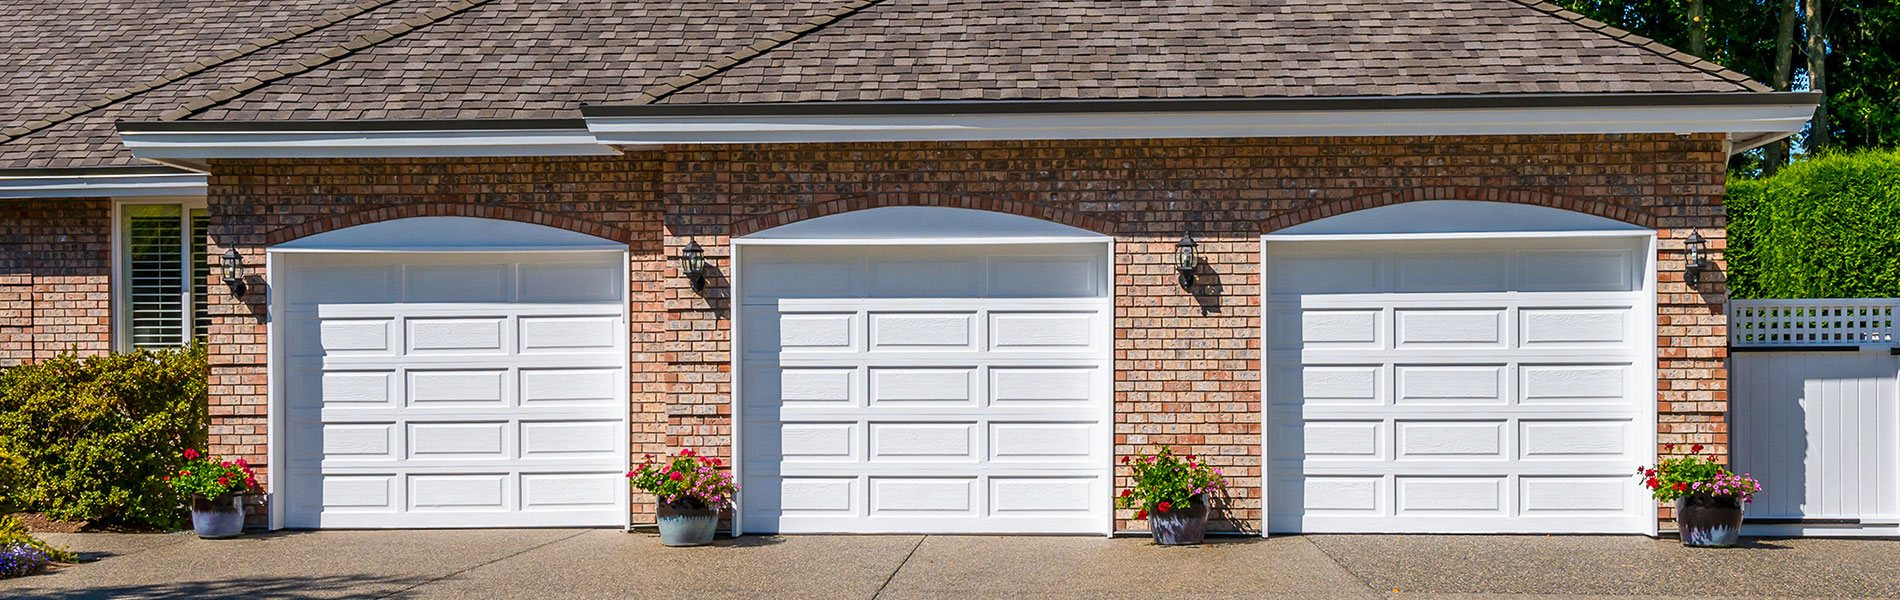 Galaxy Garage Door Repair Service, Elizabeth, NJ 908-396-6211